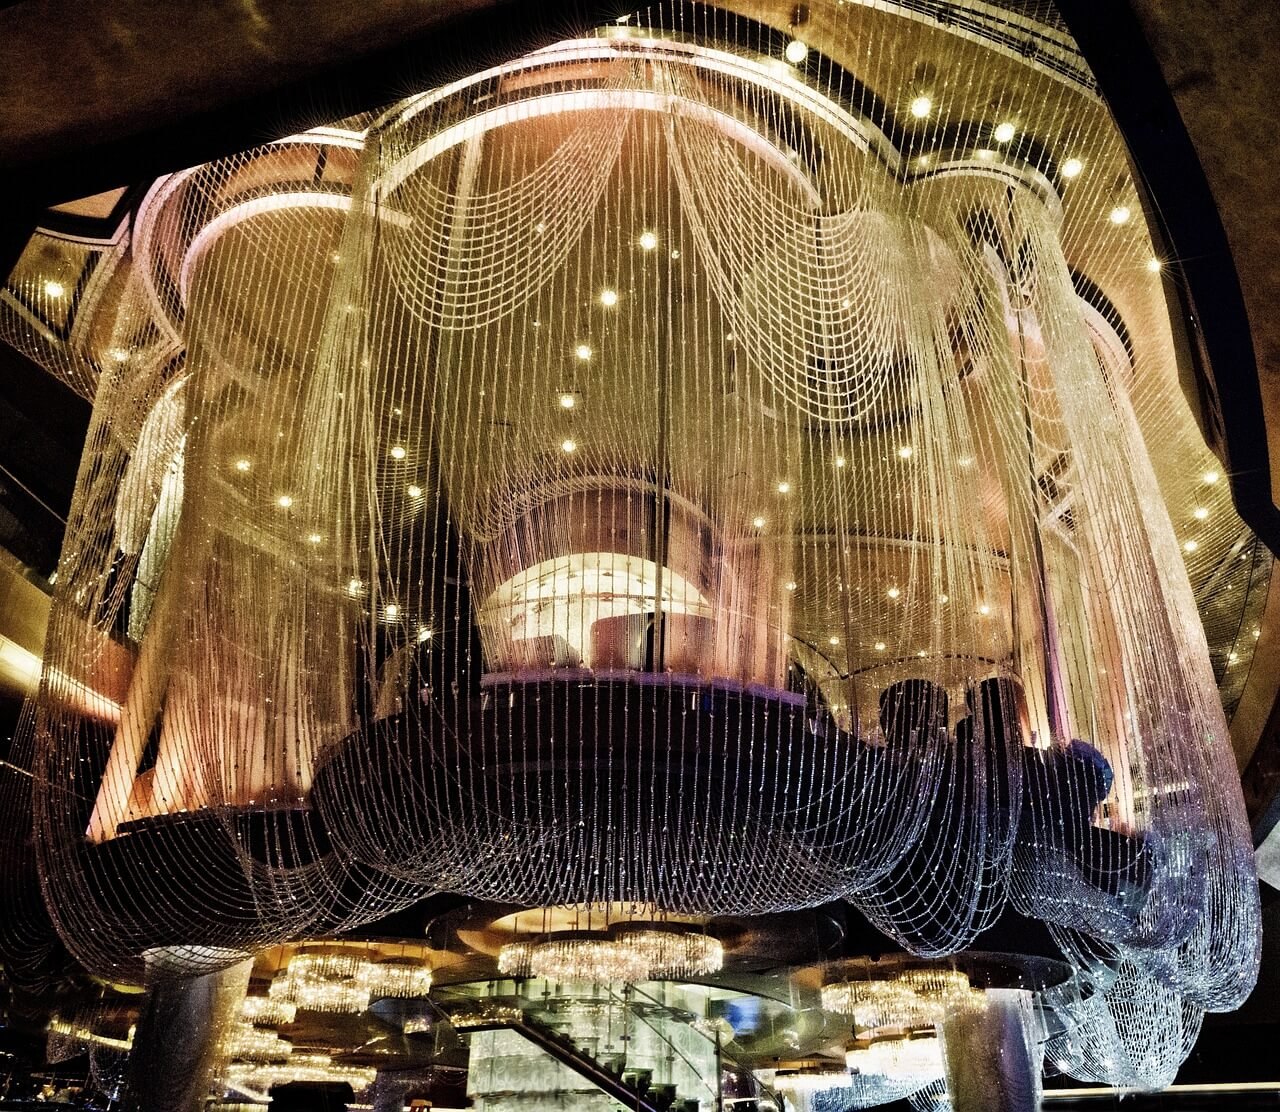 A summer whisky cocktail at the Chandelier Bar in the Cosmopolitan Hotel in Las Vegas